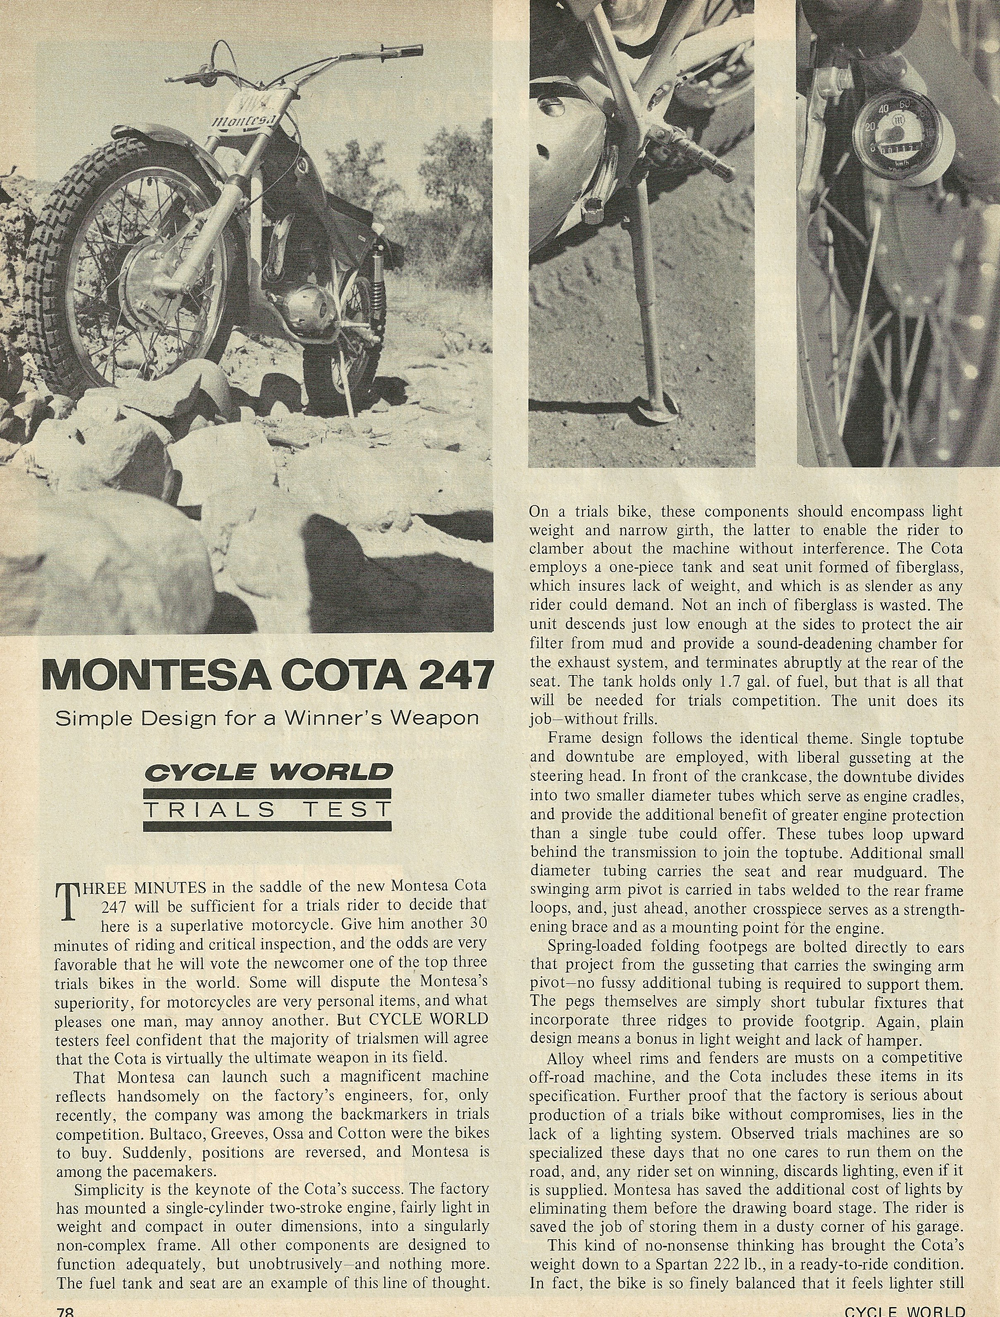 1969 Montesa Cota 247 road test 1.jpg